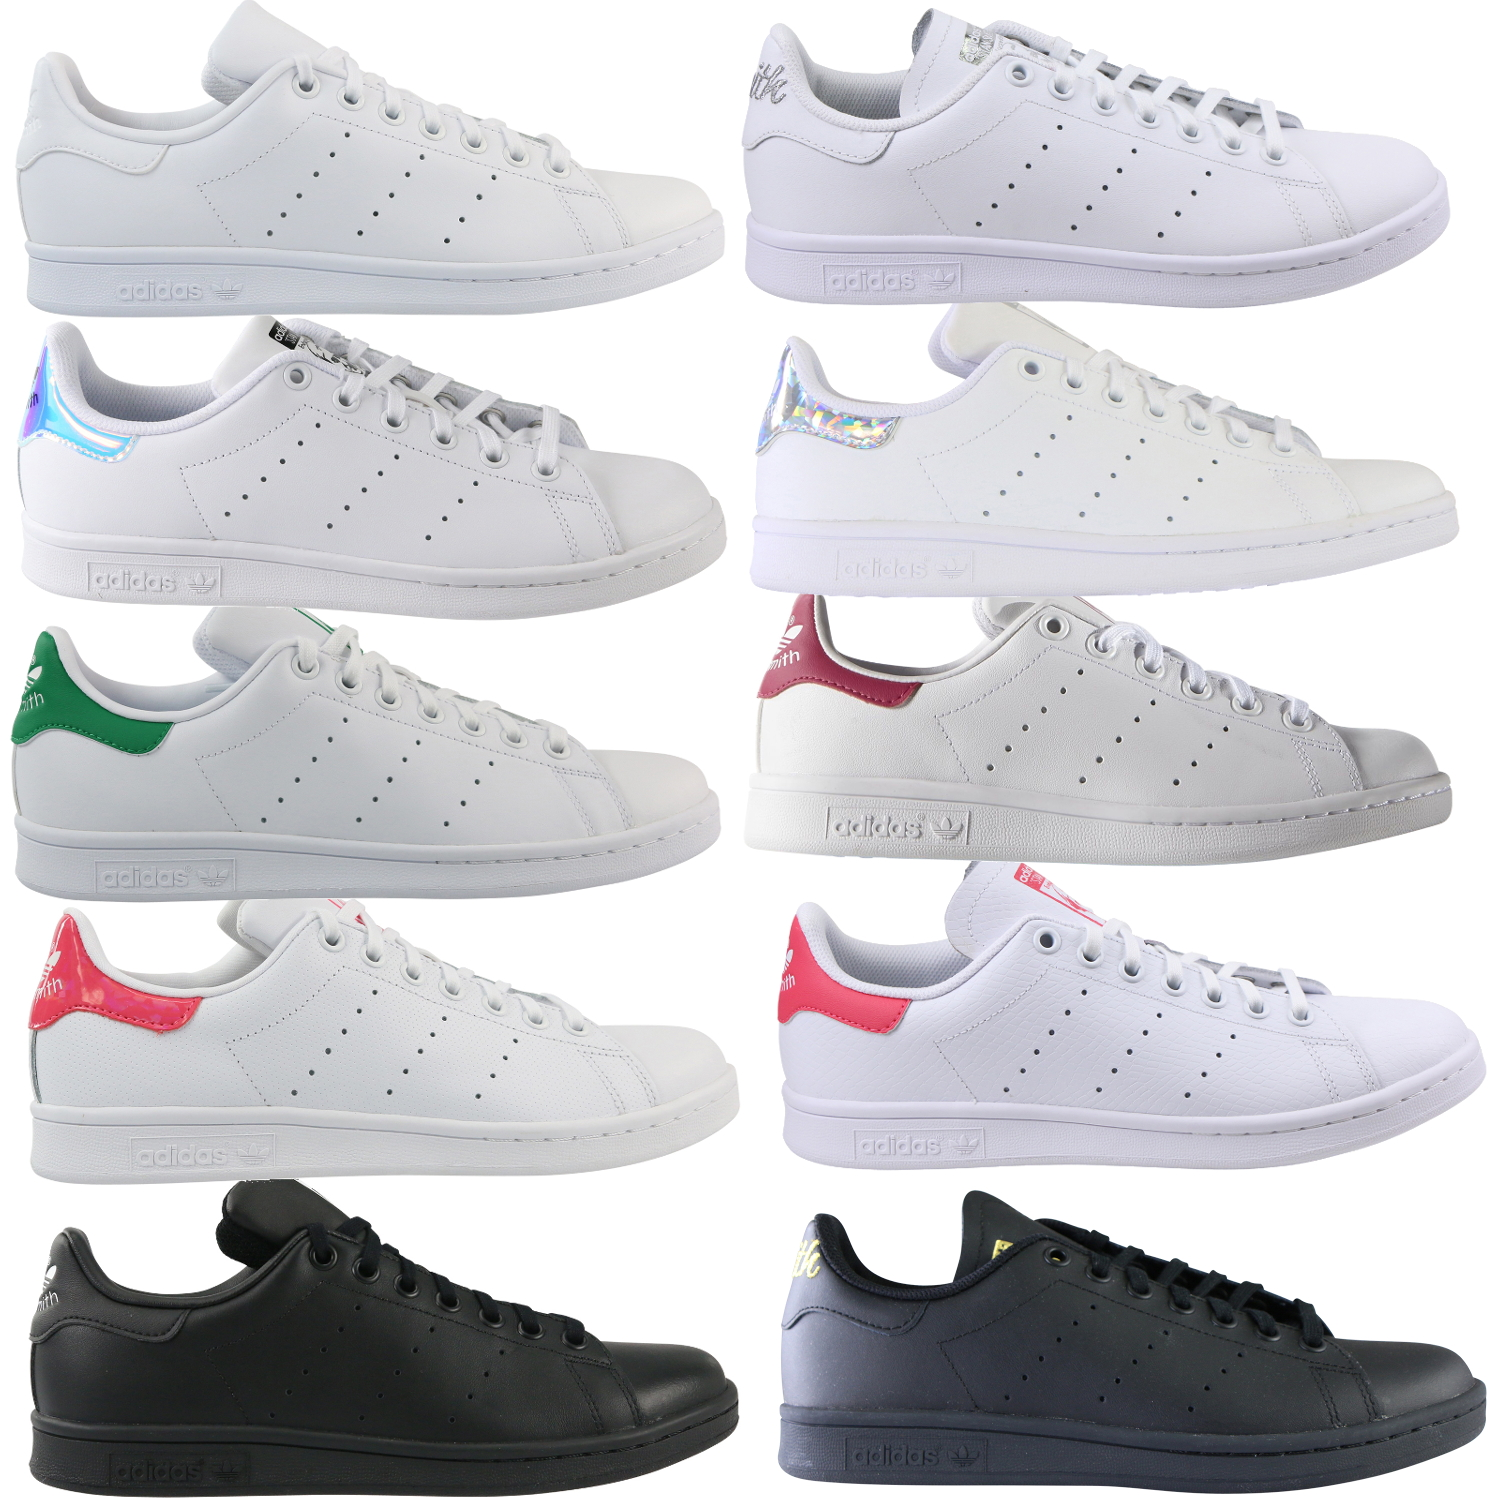 Details zu Adidas Originals Stan Smith Junior Schuhe Sneaker Kinder